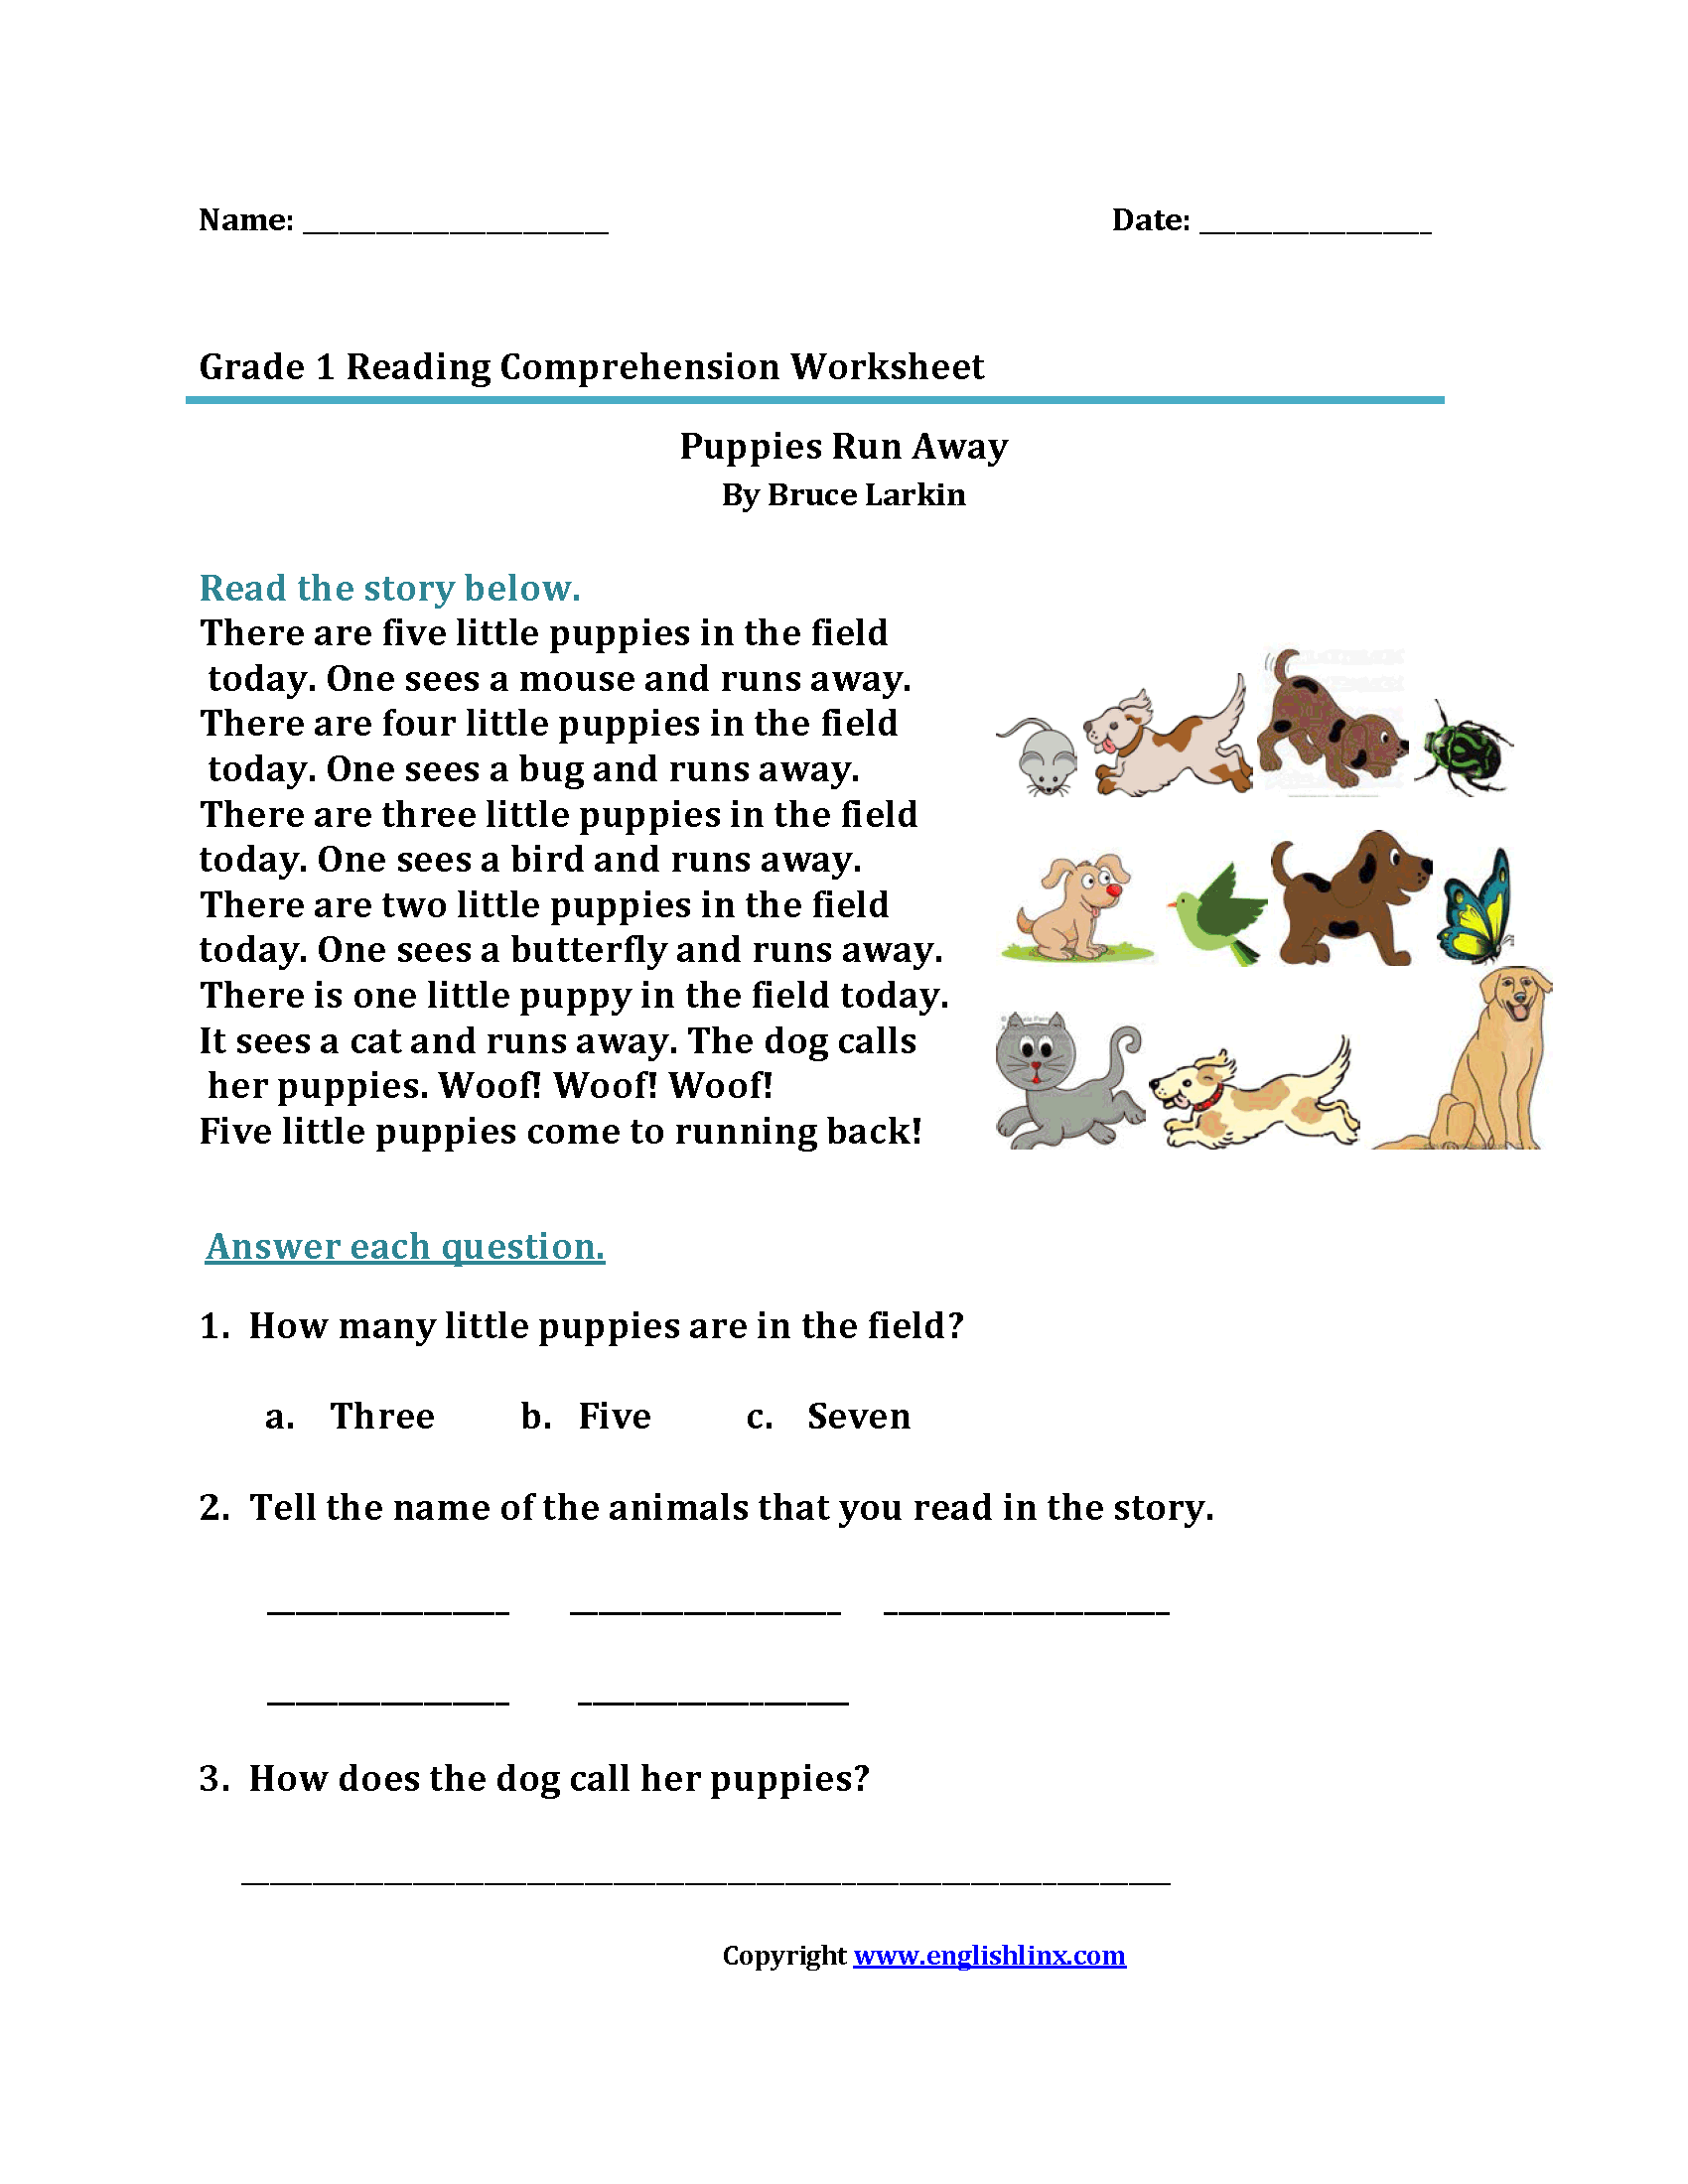 Large Print Reading Worksheets